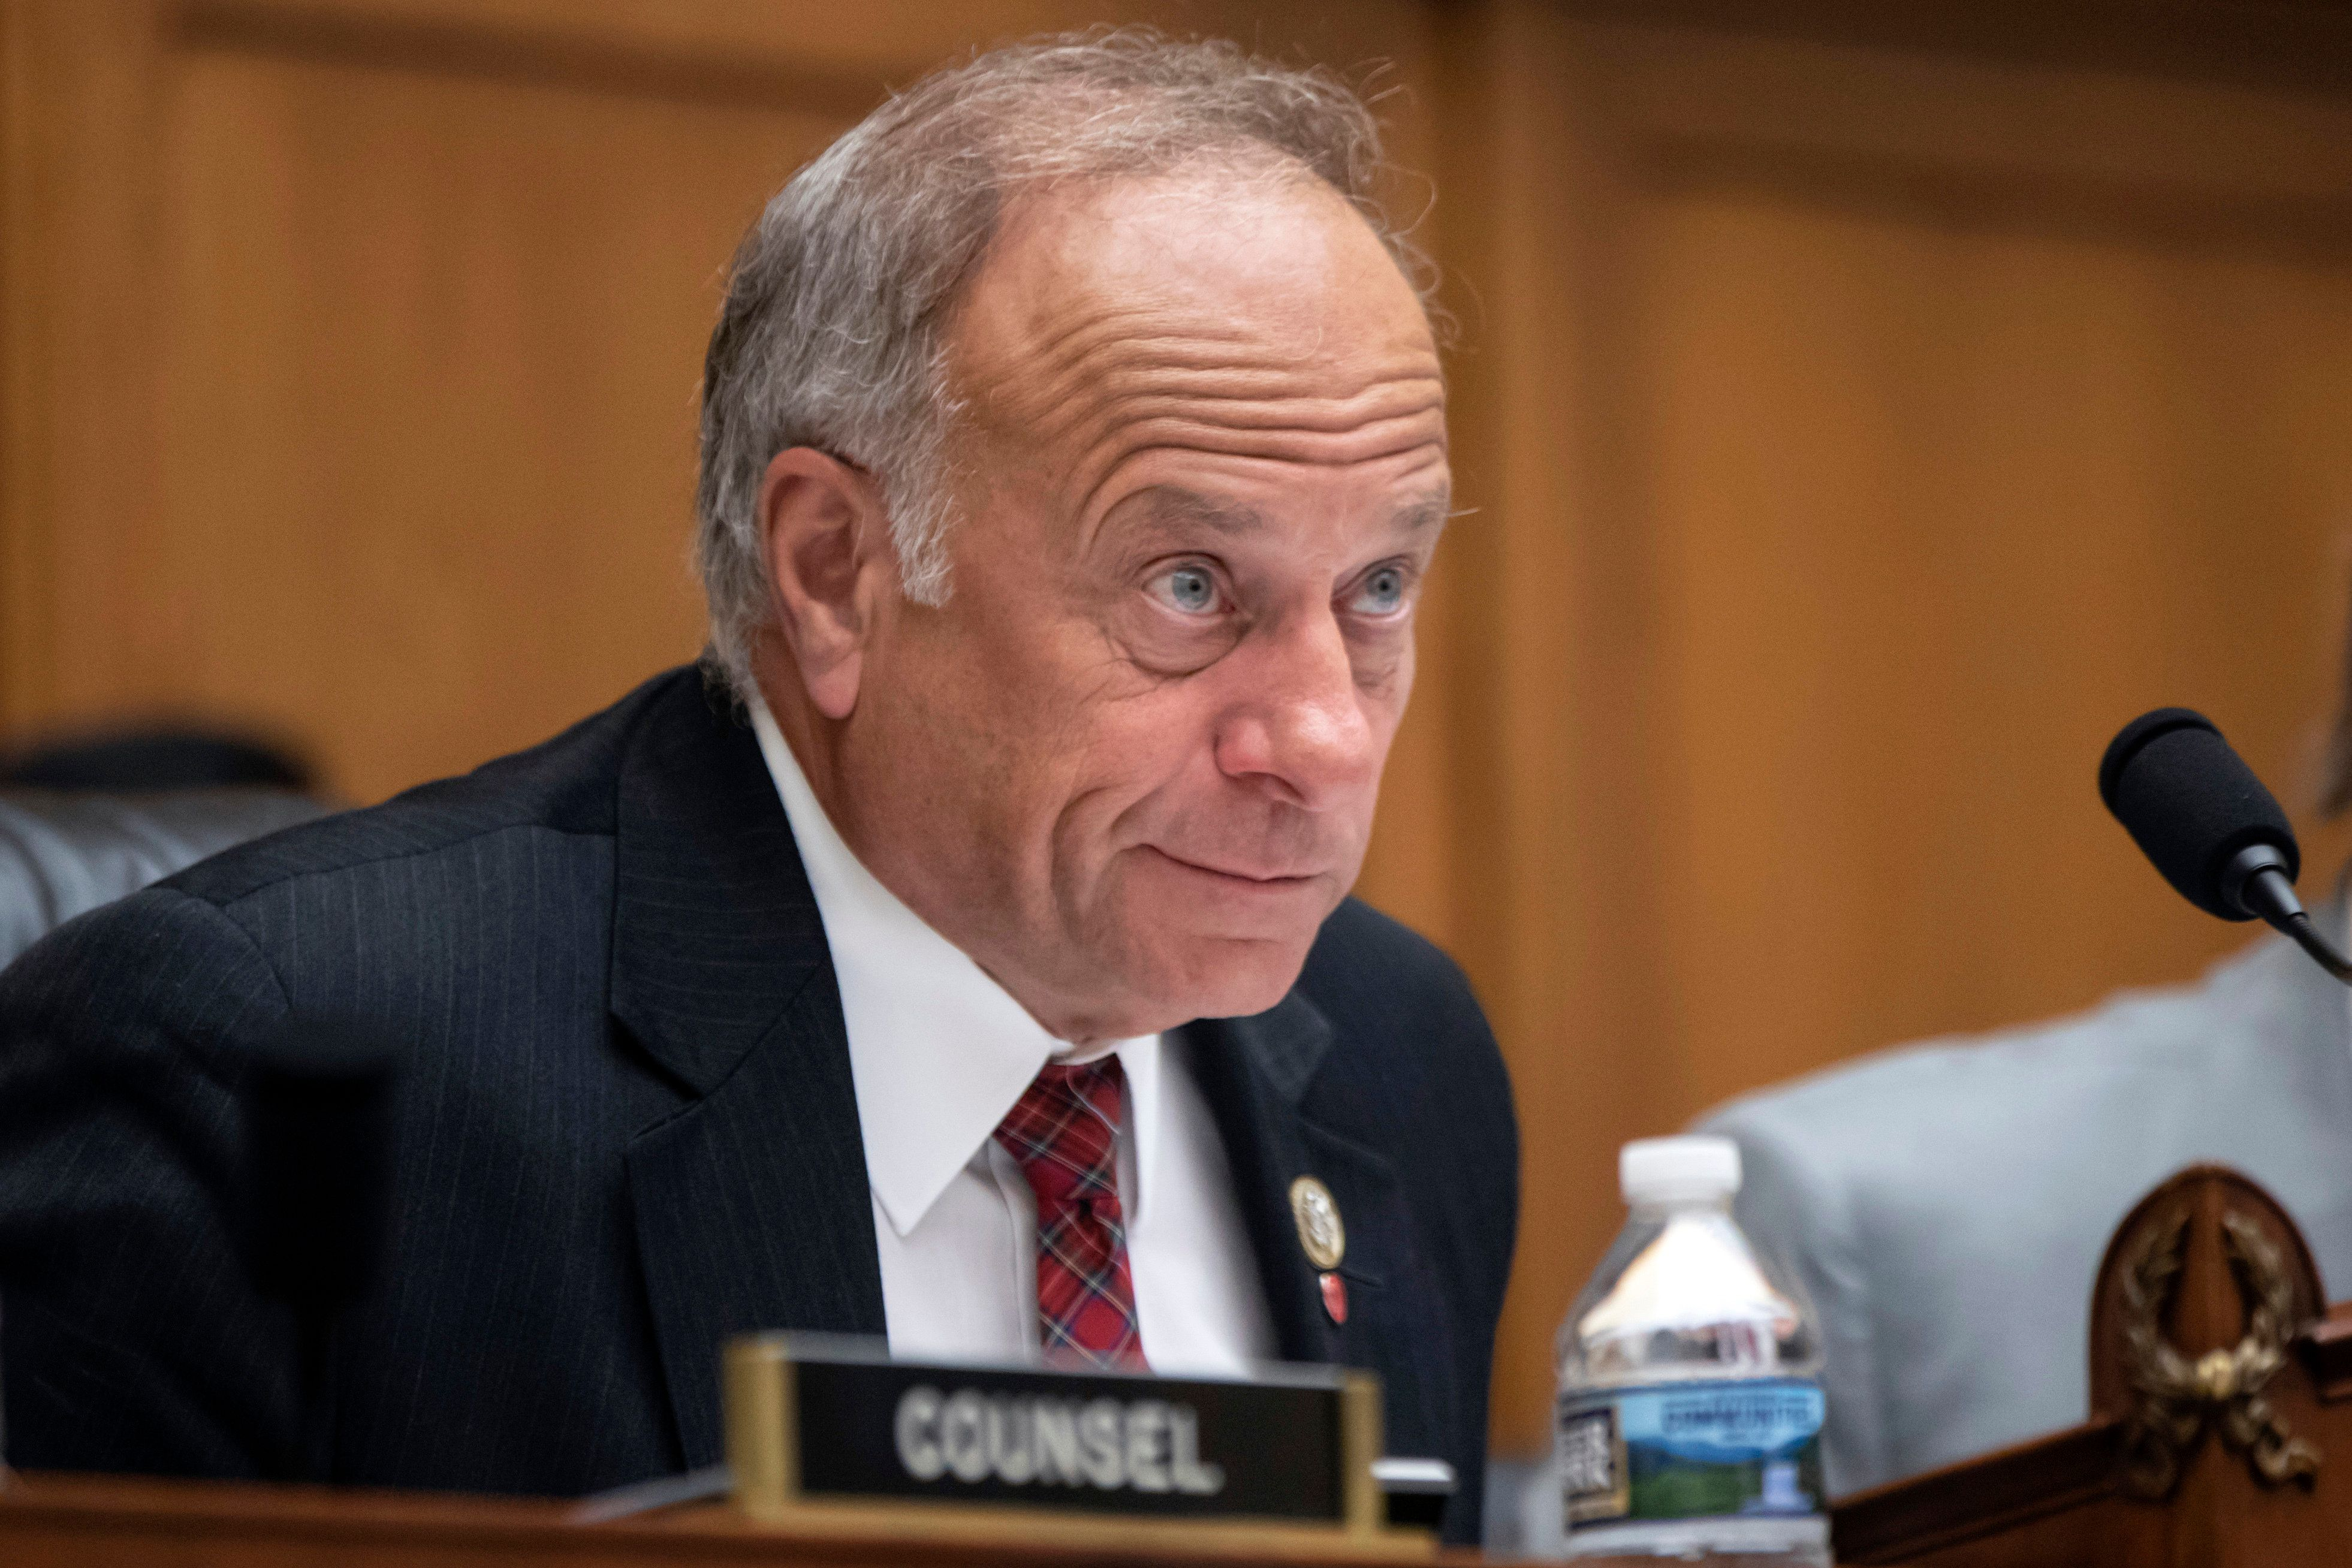 FILE - In this June 8, 2018, file photo, Rep. Steve King, R-Iowa, at a hearing on Capitol Hill in Washington. King is coming under fire ahead of the midterm election as top Republican officials and campaign donors balk at standing with a Republican congressman who regularly espouses extreme views on race and immigration. (AP Photo/J. Scott Applewhite, File)